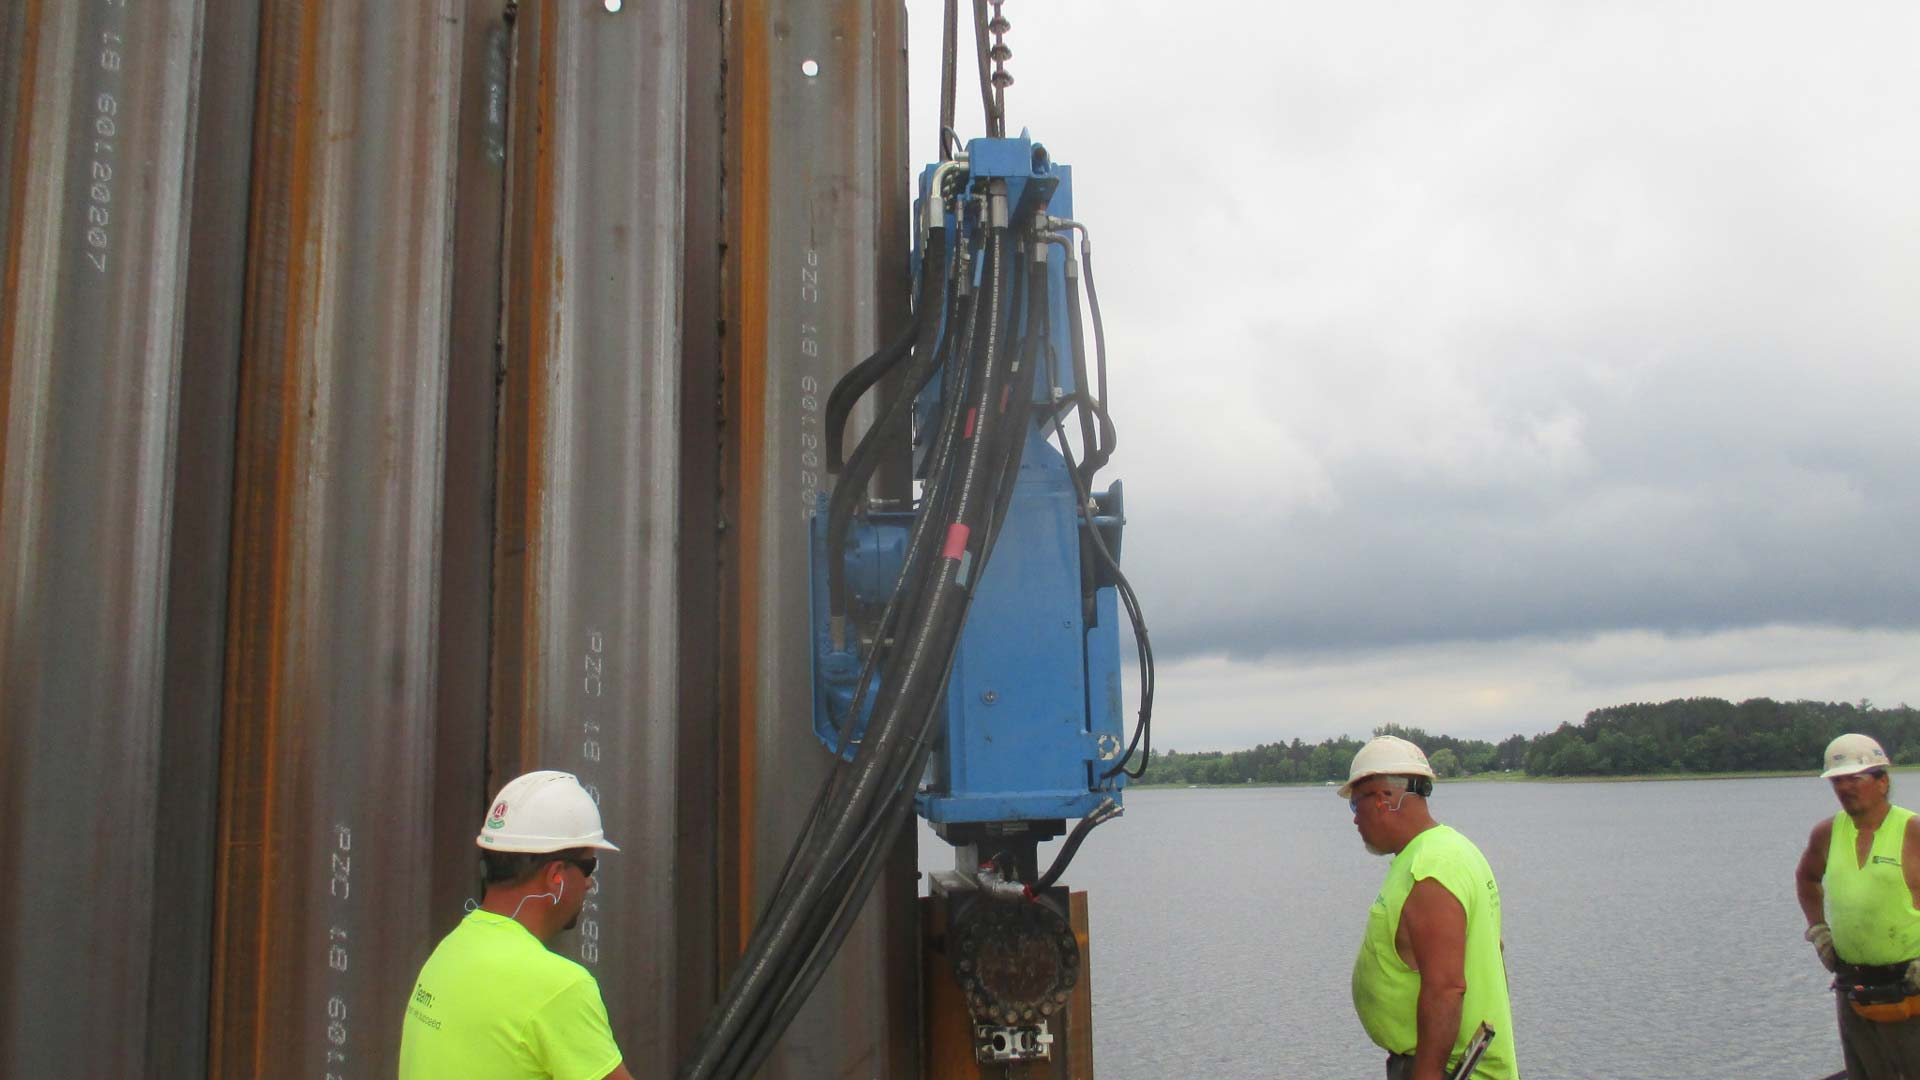 Staab employees working by the water